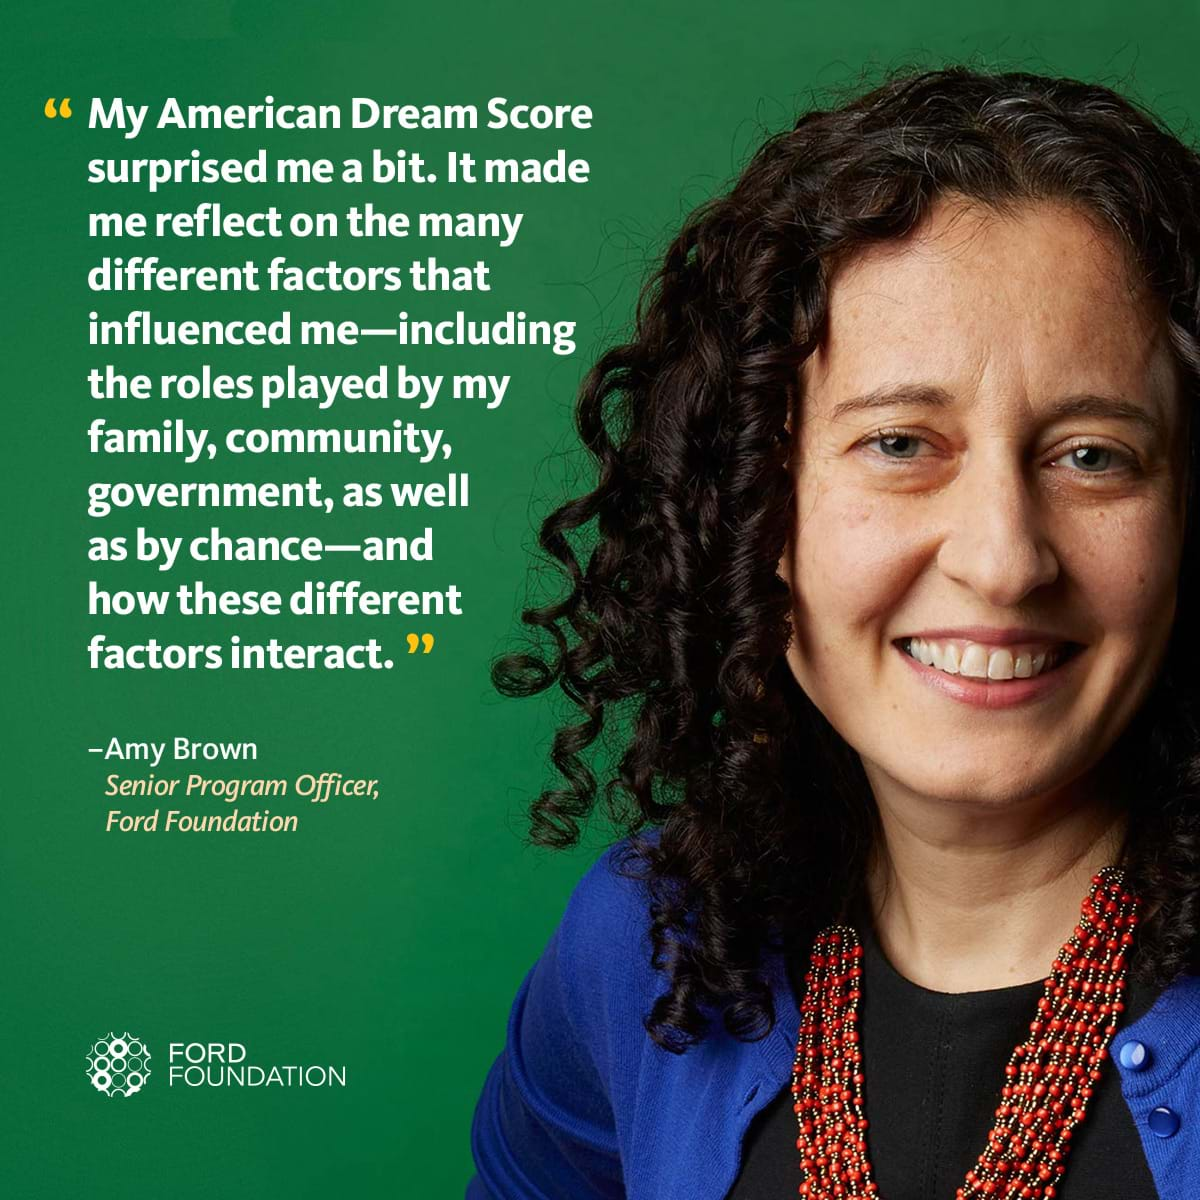 Amy Brown on reflects on her American Dream Score